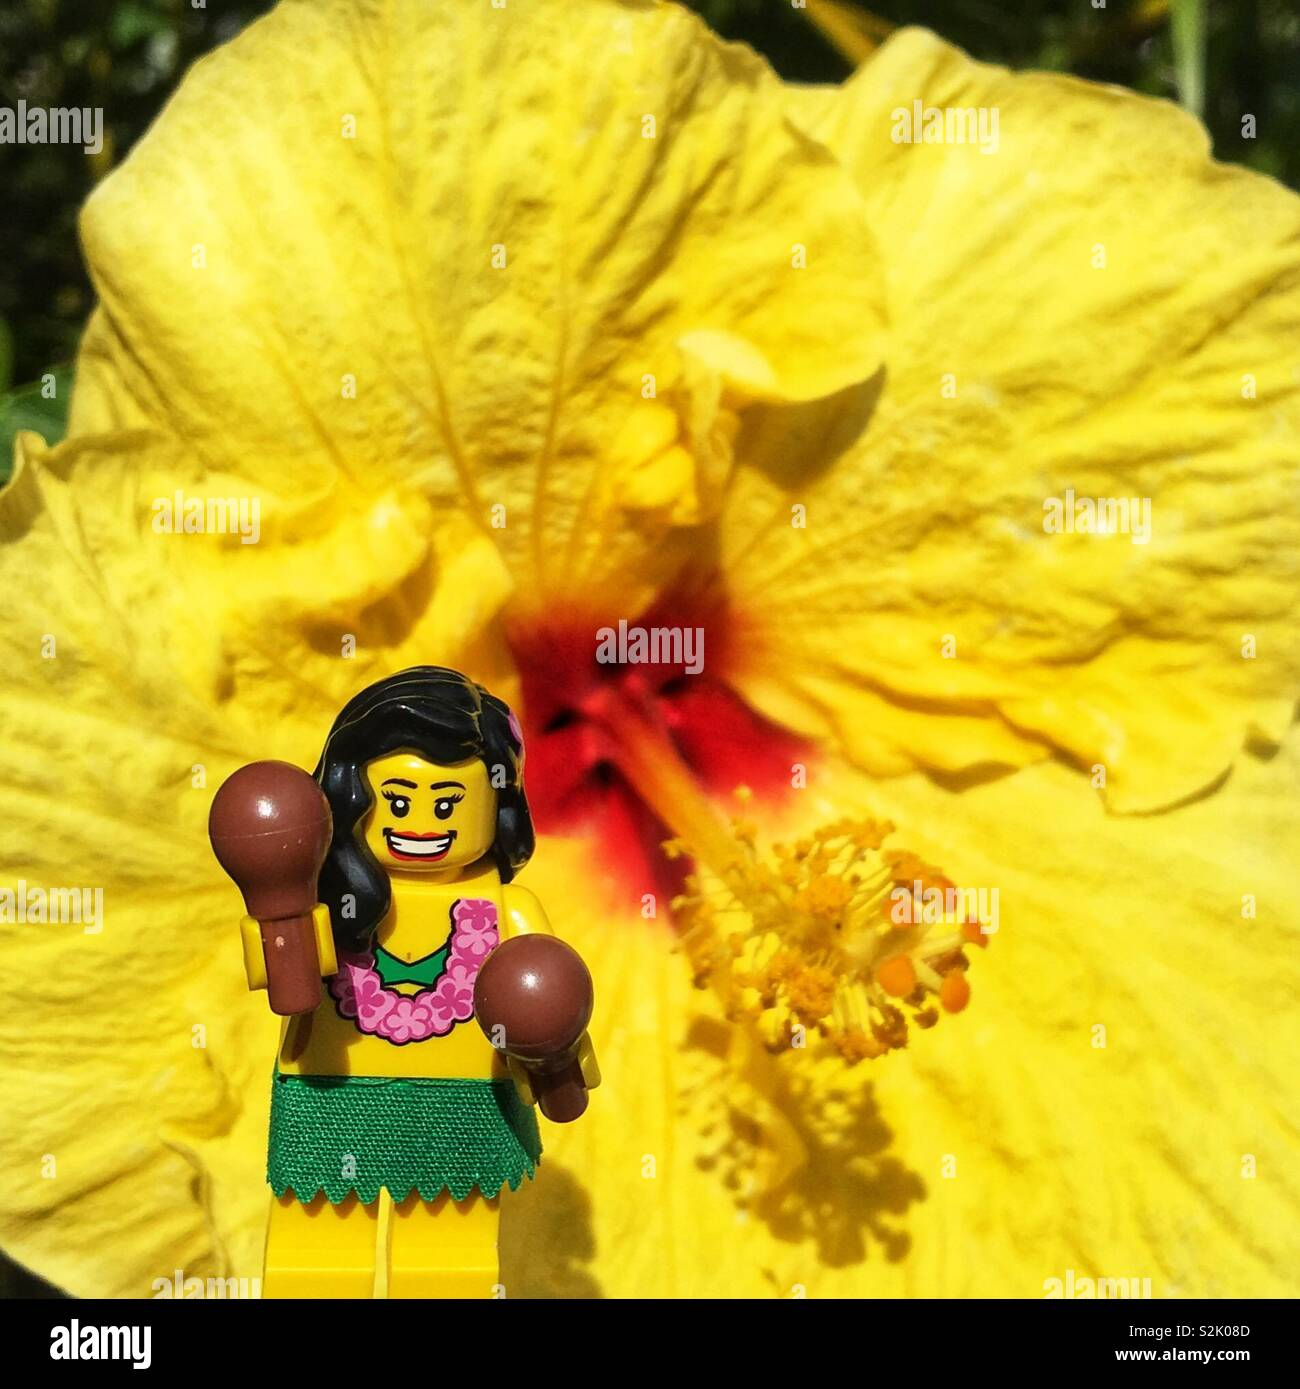 A LEGO hula dancer mini figure in front of a yellow hibiscus flower in Hawaii - Stock Image